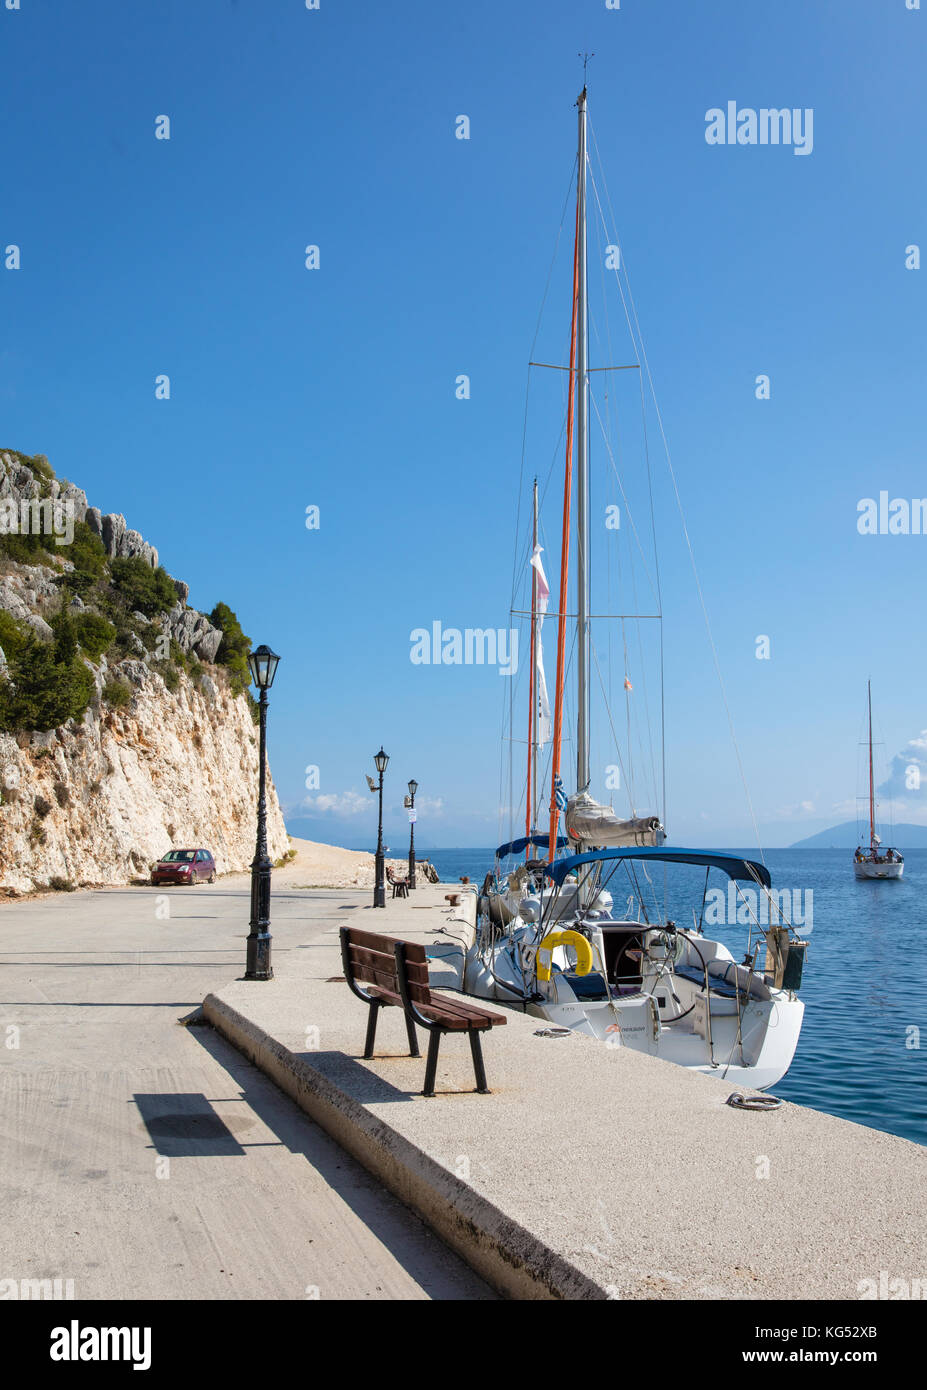 The harbour side in the little fishing village of Frikes on Ithaka in the Ionian Islands Greece - Stock Image